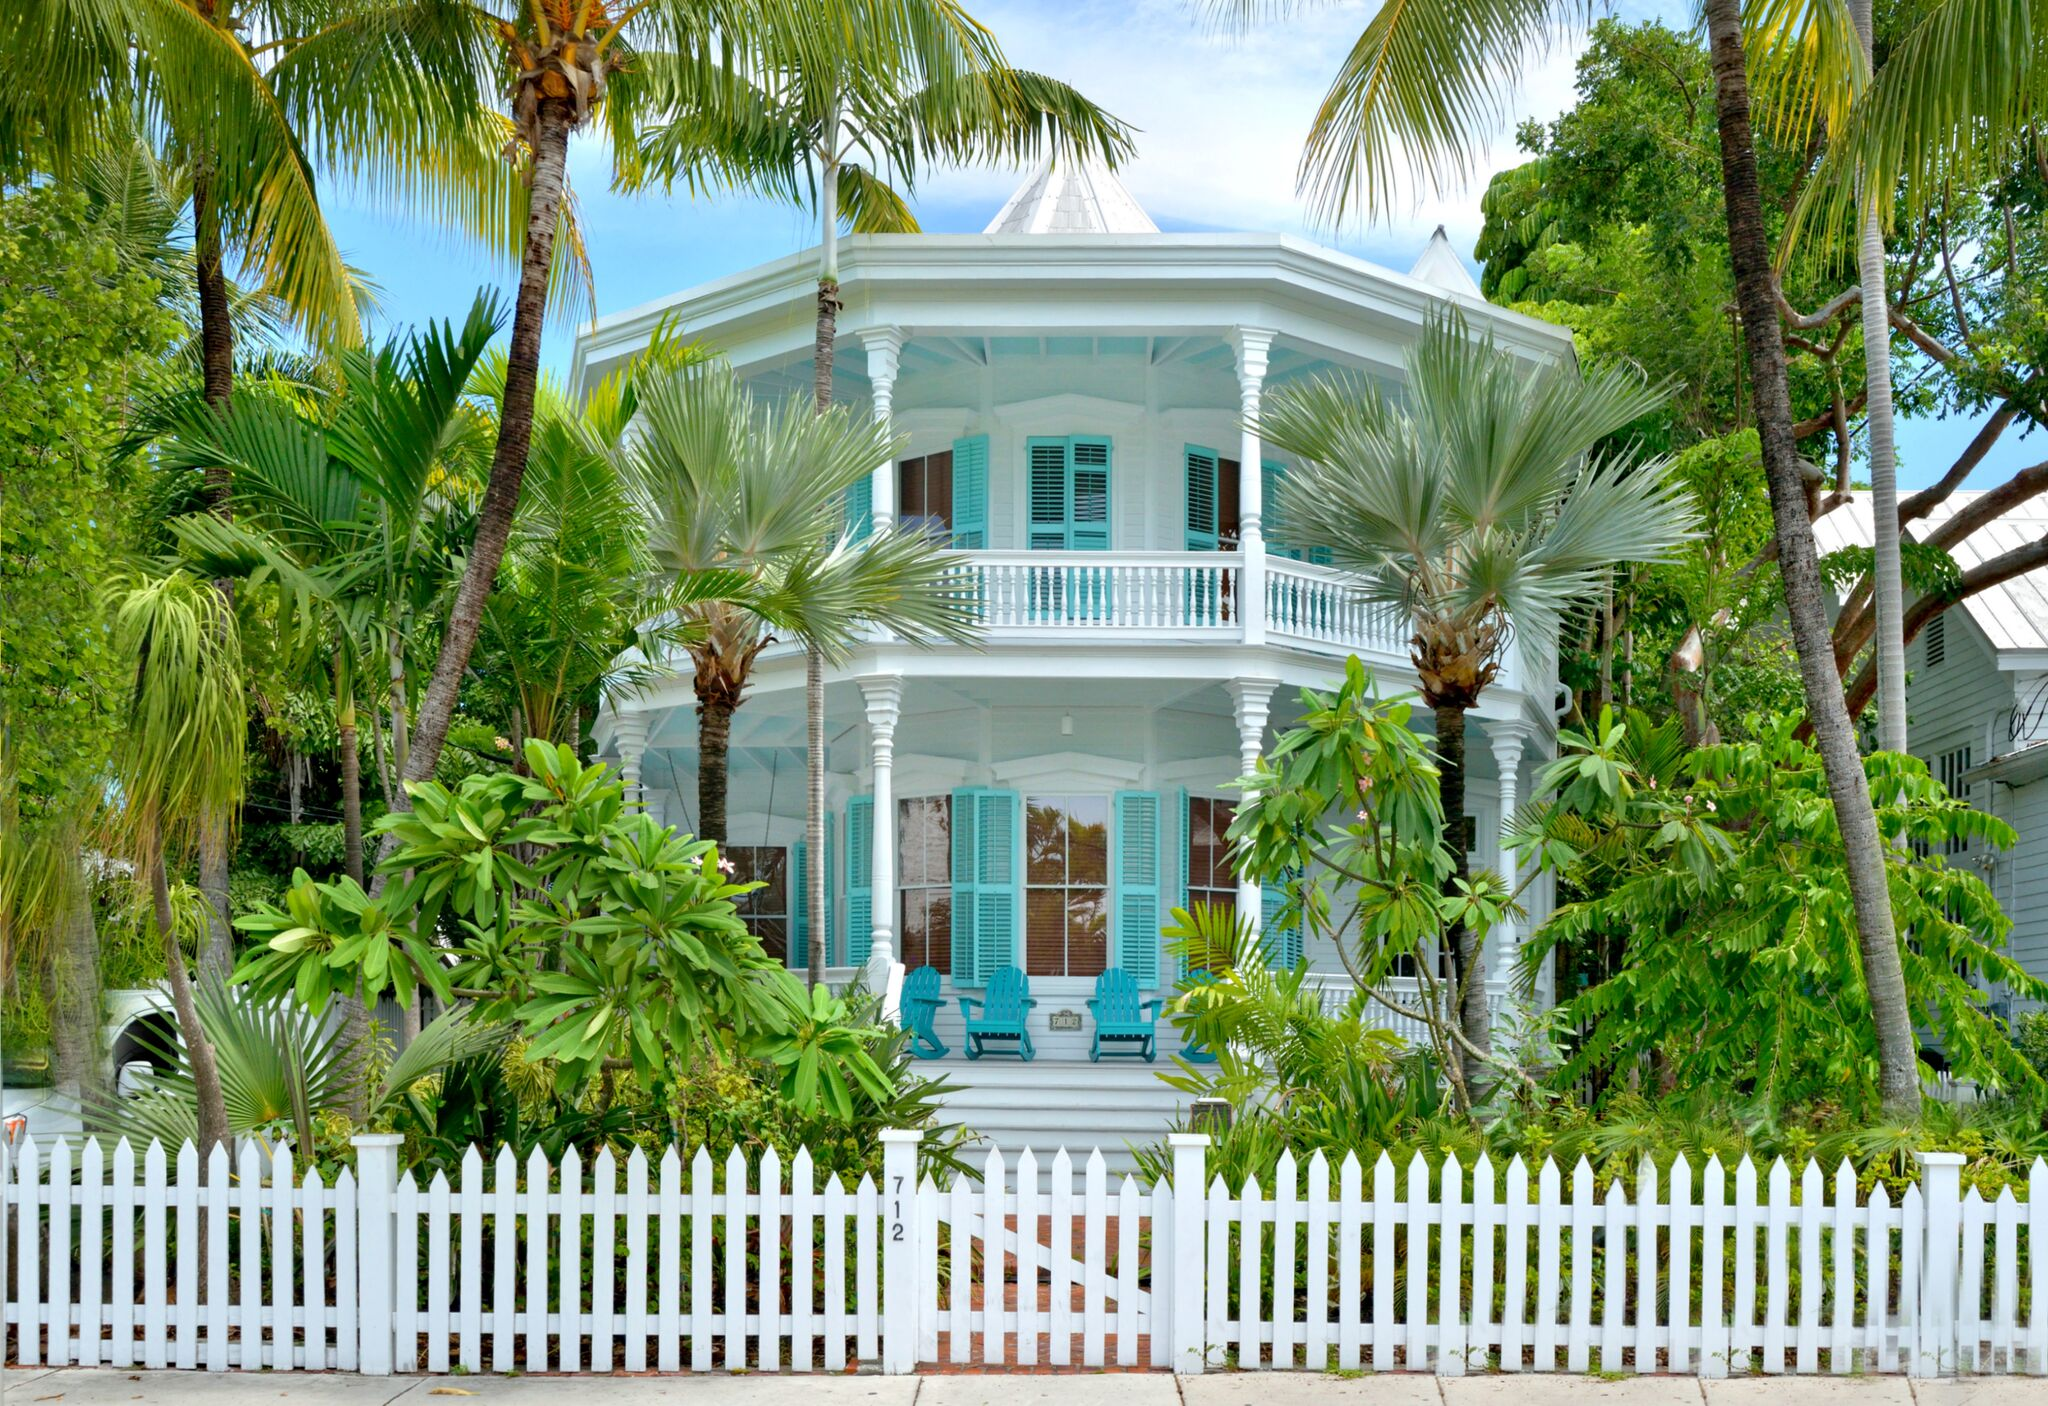 designer octagon house of key west